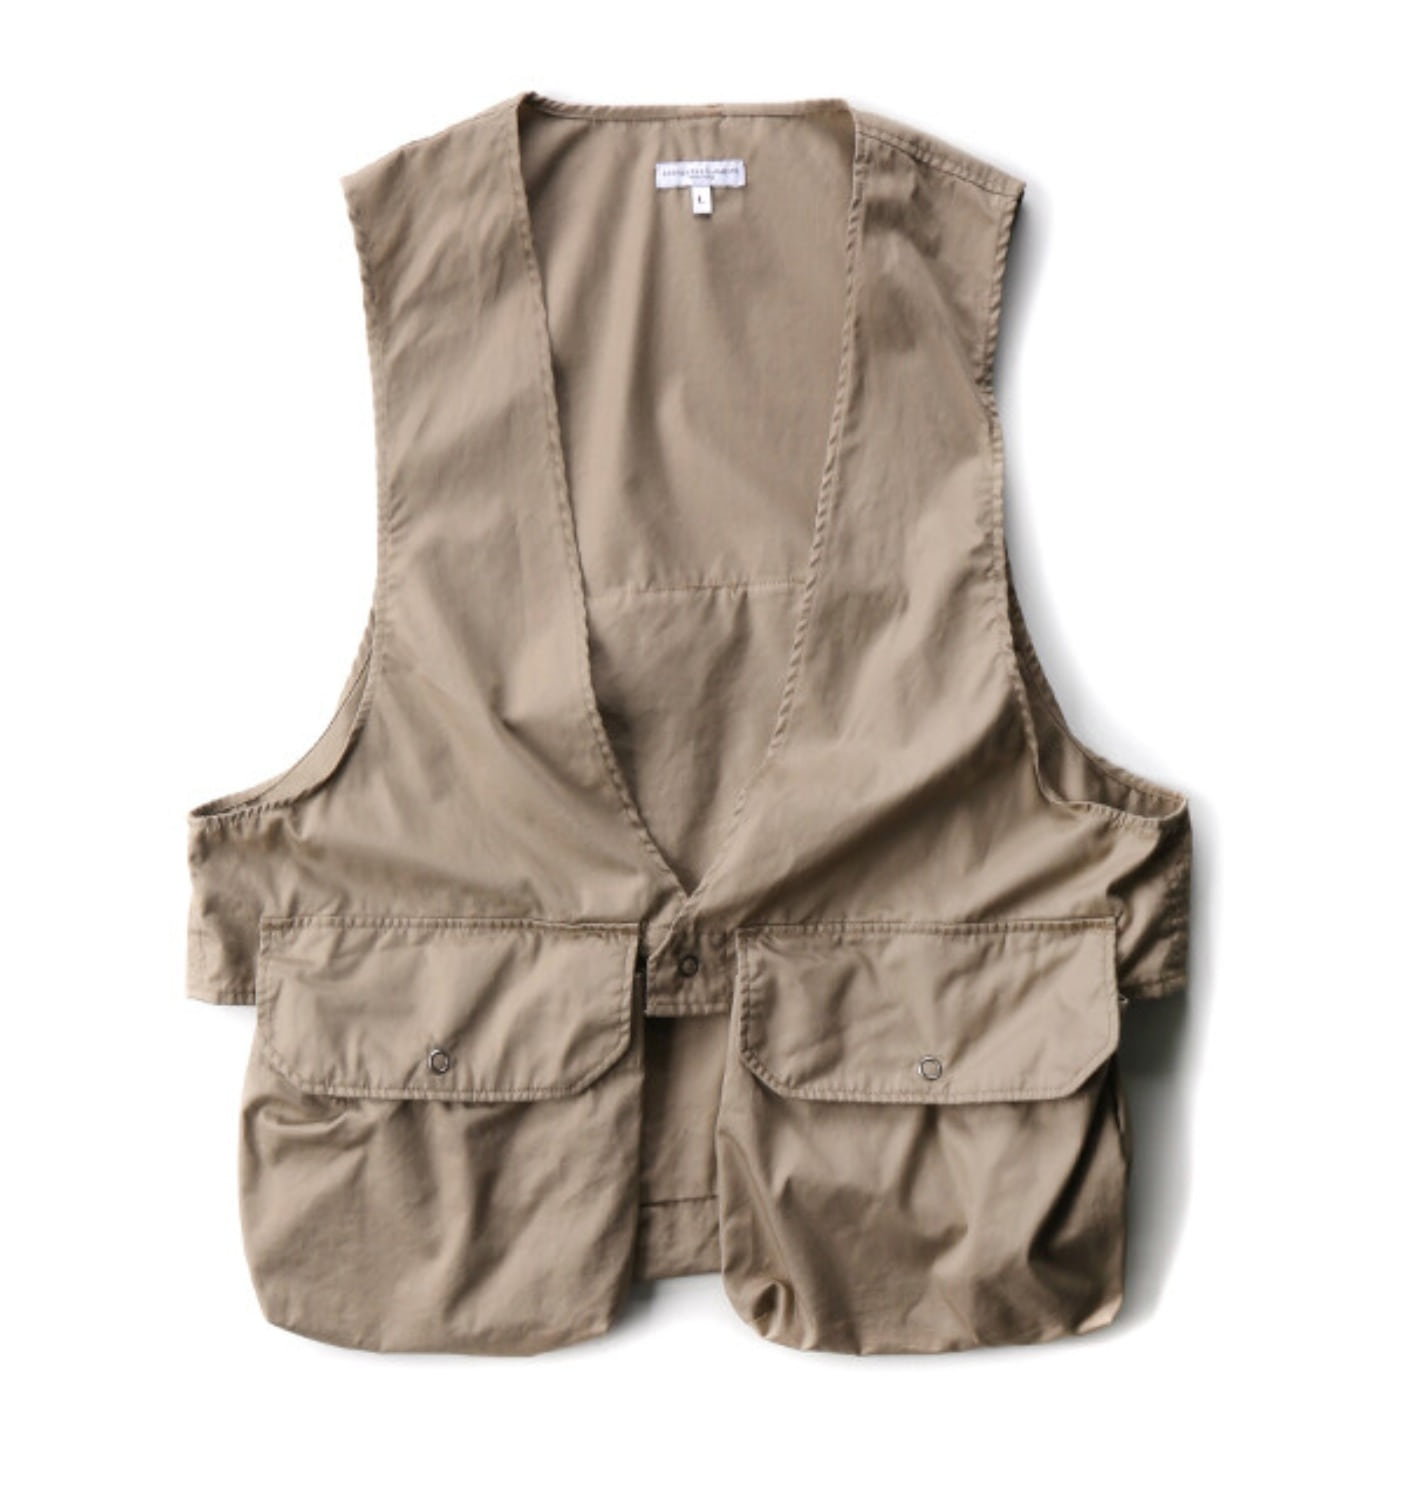 FOWL VEST KHAKI HIGHCOUNT TWILL